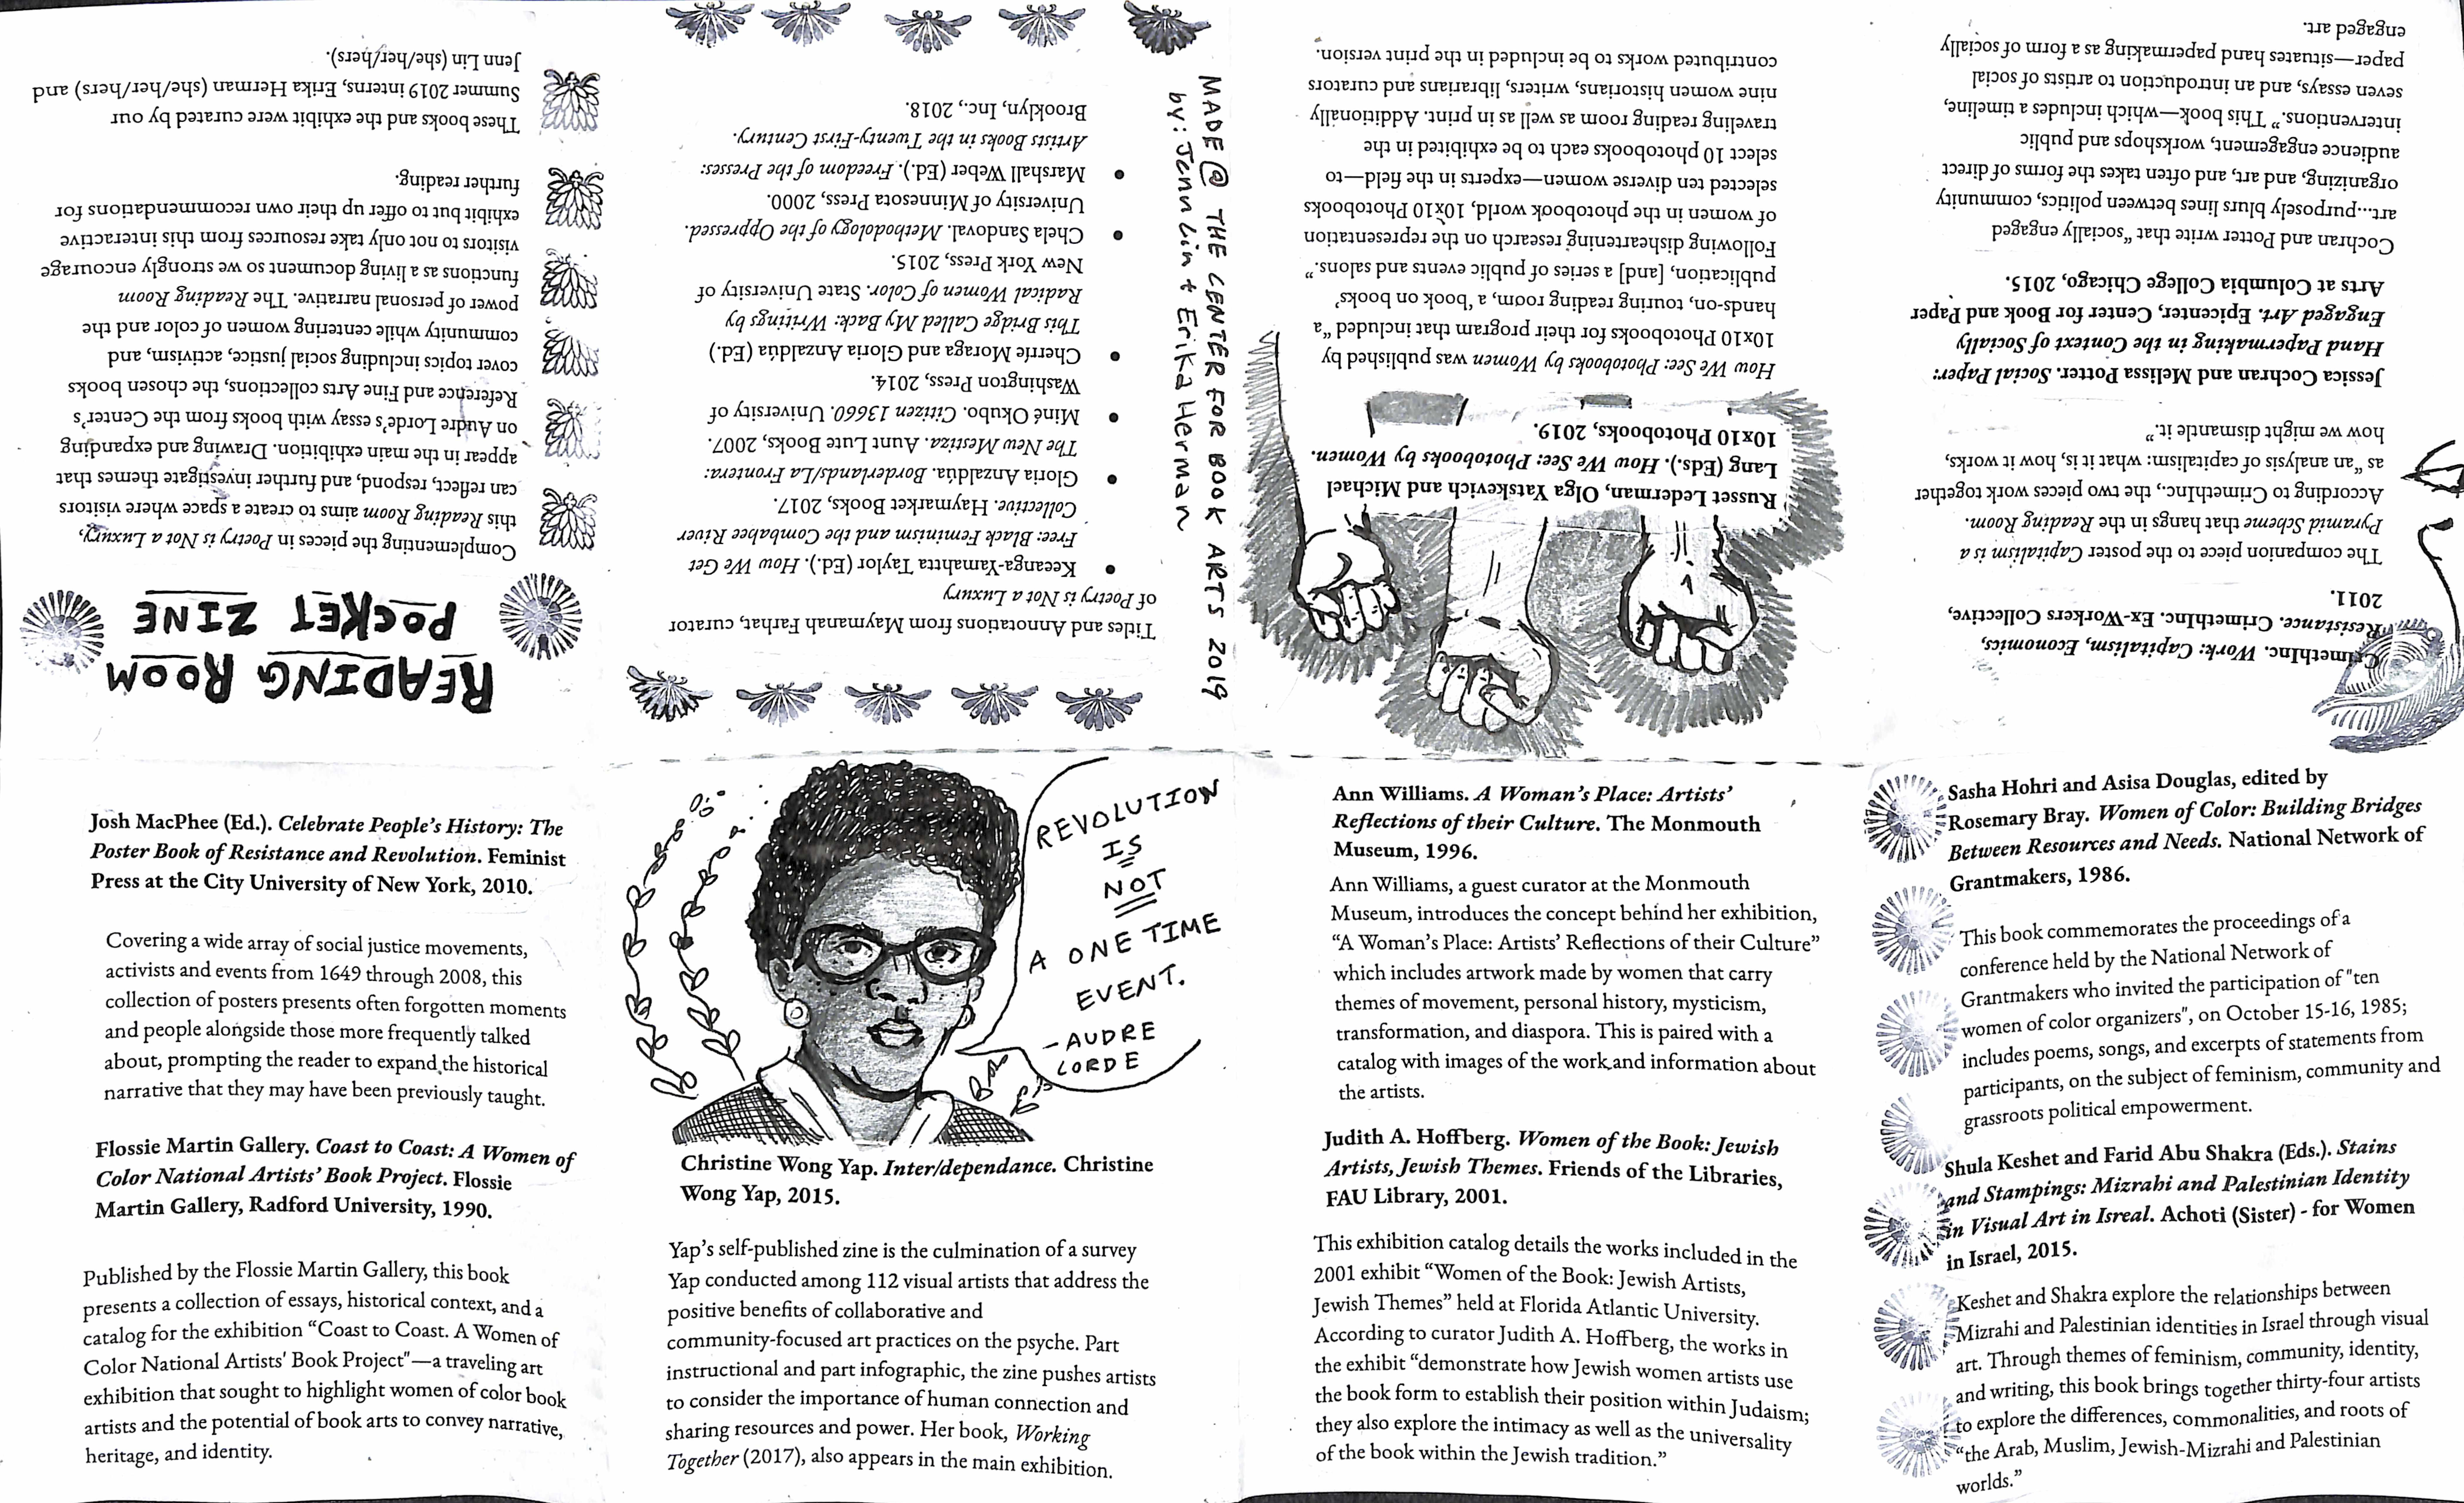 printable zine bibliography for the exhibition